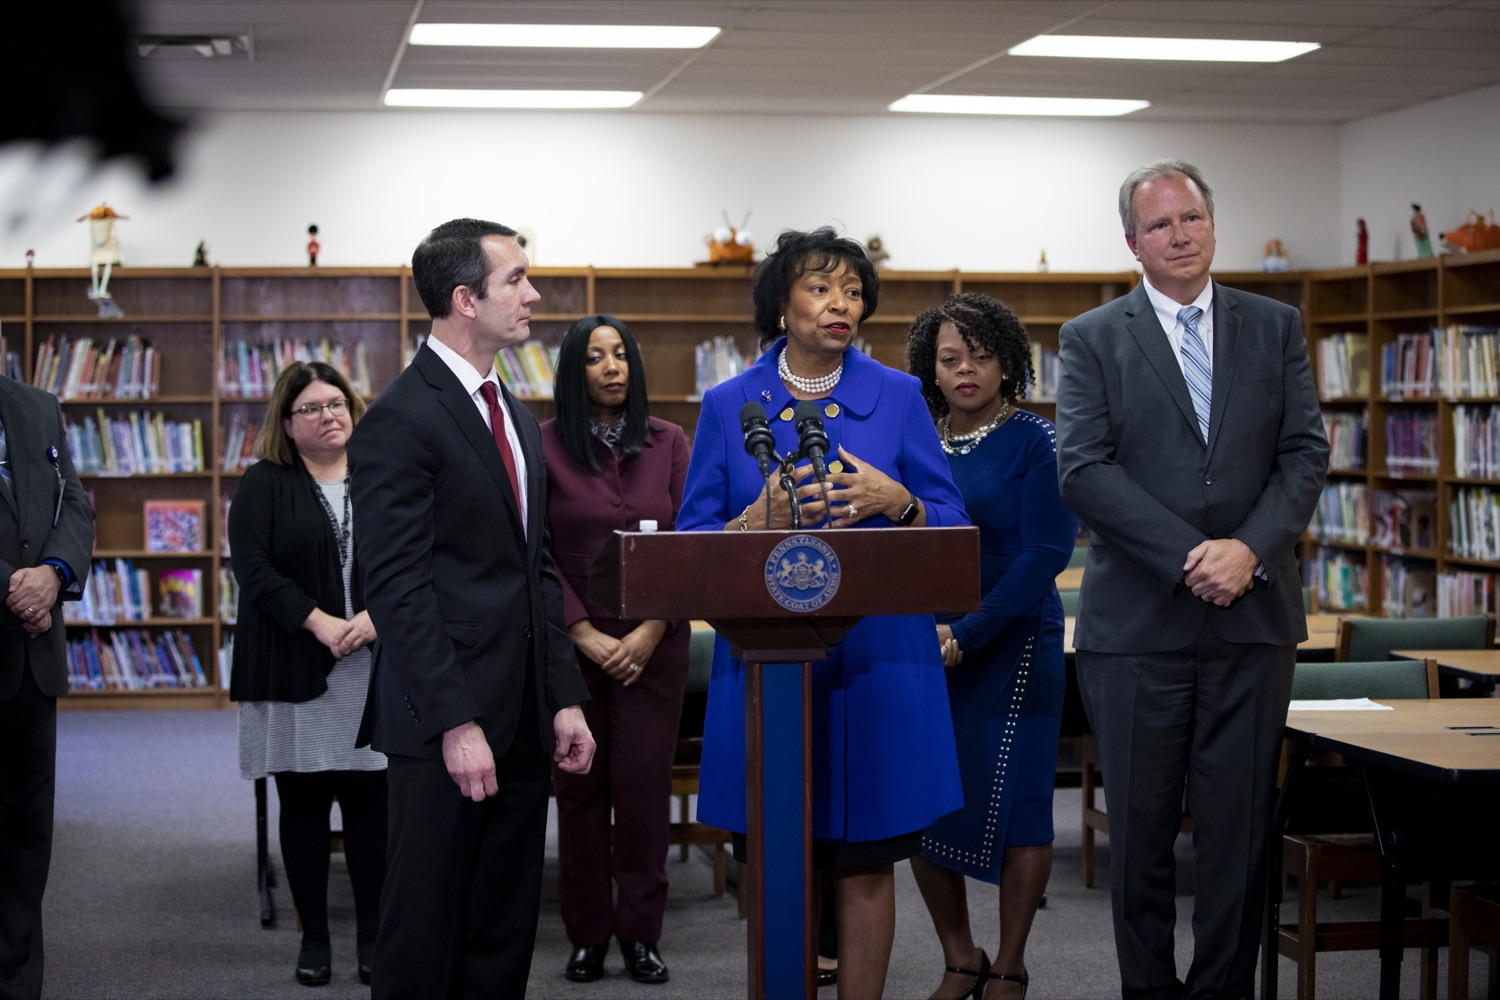 """<a href=""""http://filesource.abacast.com/commonwealthofpa/photo/17611_AUD_GEN_HBG_AUDIT_UPDATE_CZ_13.JPG"""" target=""""_blank"""">⇣Download Photo<br></a>Harrisburg School District Receiver Janet C. Samuels affirms the district's commitment for continued improvement, at Foose Elementary School in Harrisburg on November 25, 2019."""